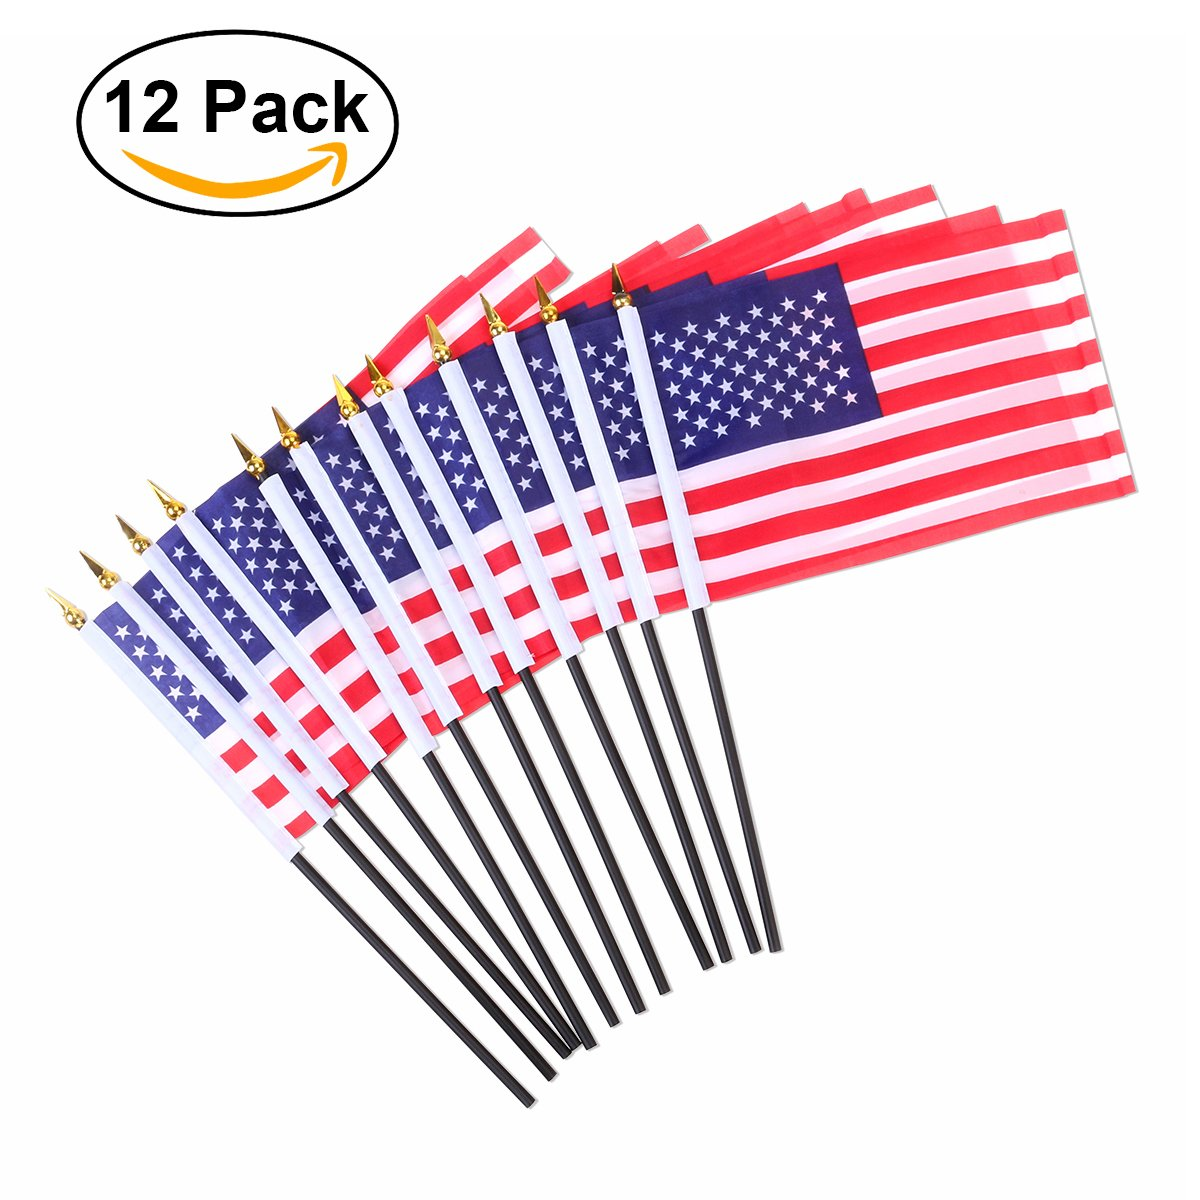 "Tinksky 12pcs American Flags 8"" x 5"" Hand Flags Mini US Flags on Stick for 4th of July Decoration and Patriotic Events"